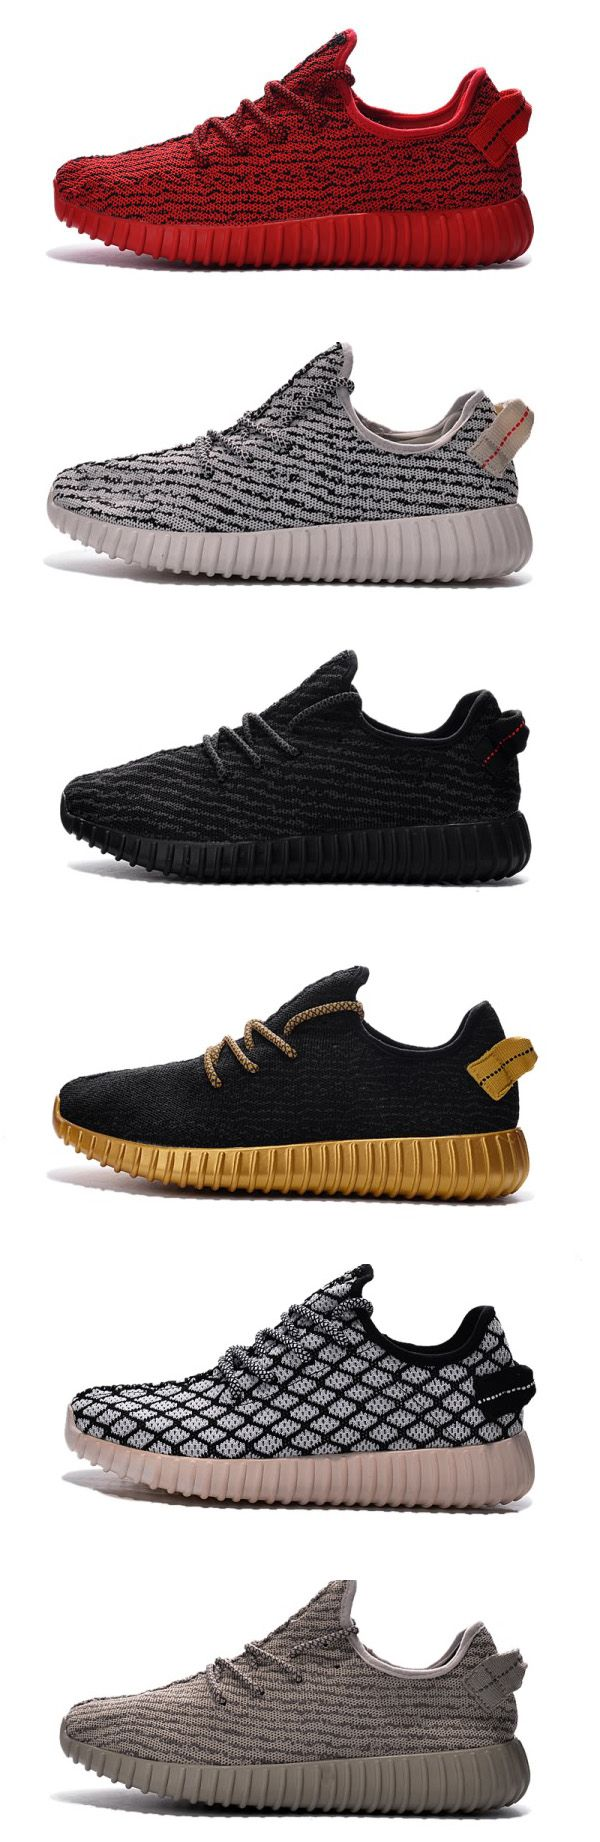 Cheap Adidas Yeezy 350 Unisex Boost Free Shipping only Price $35